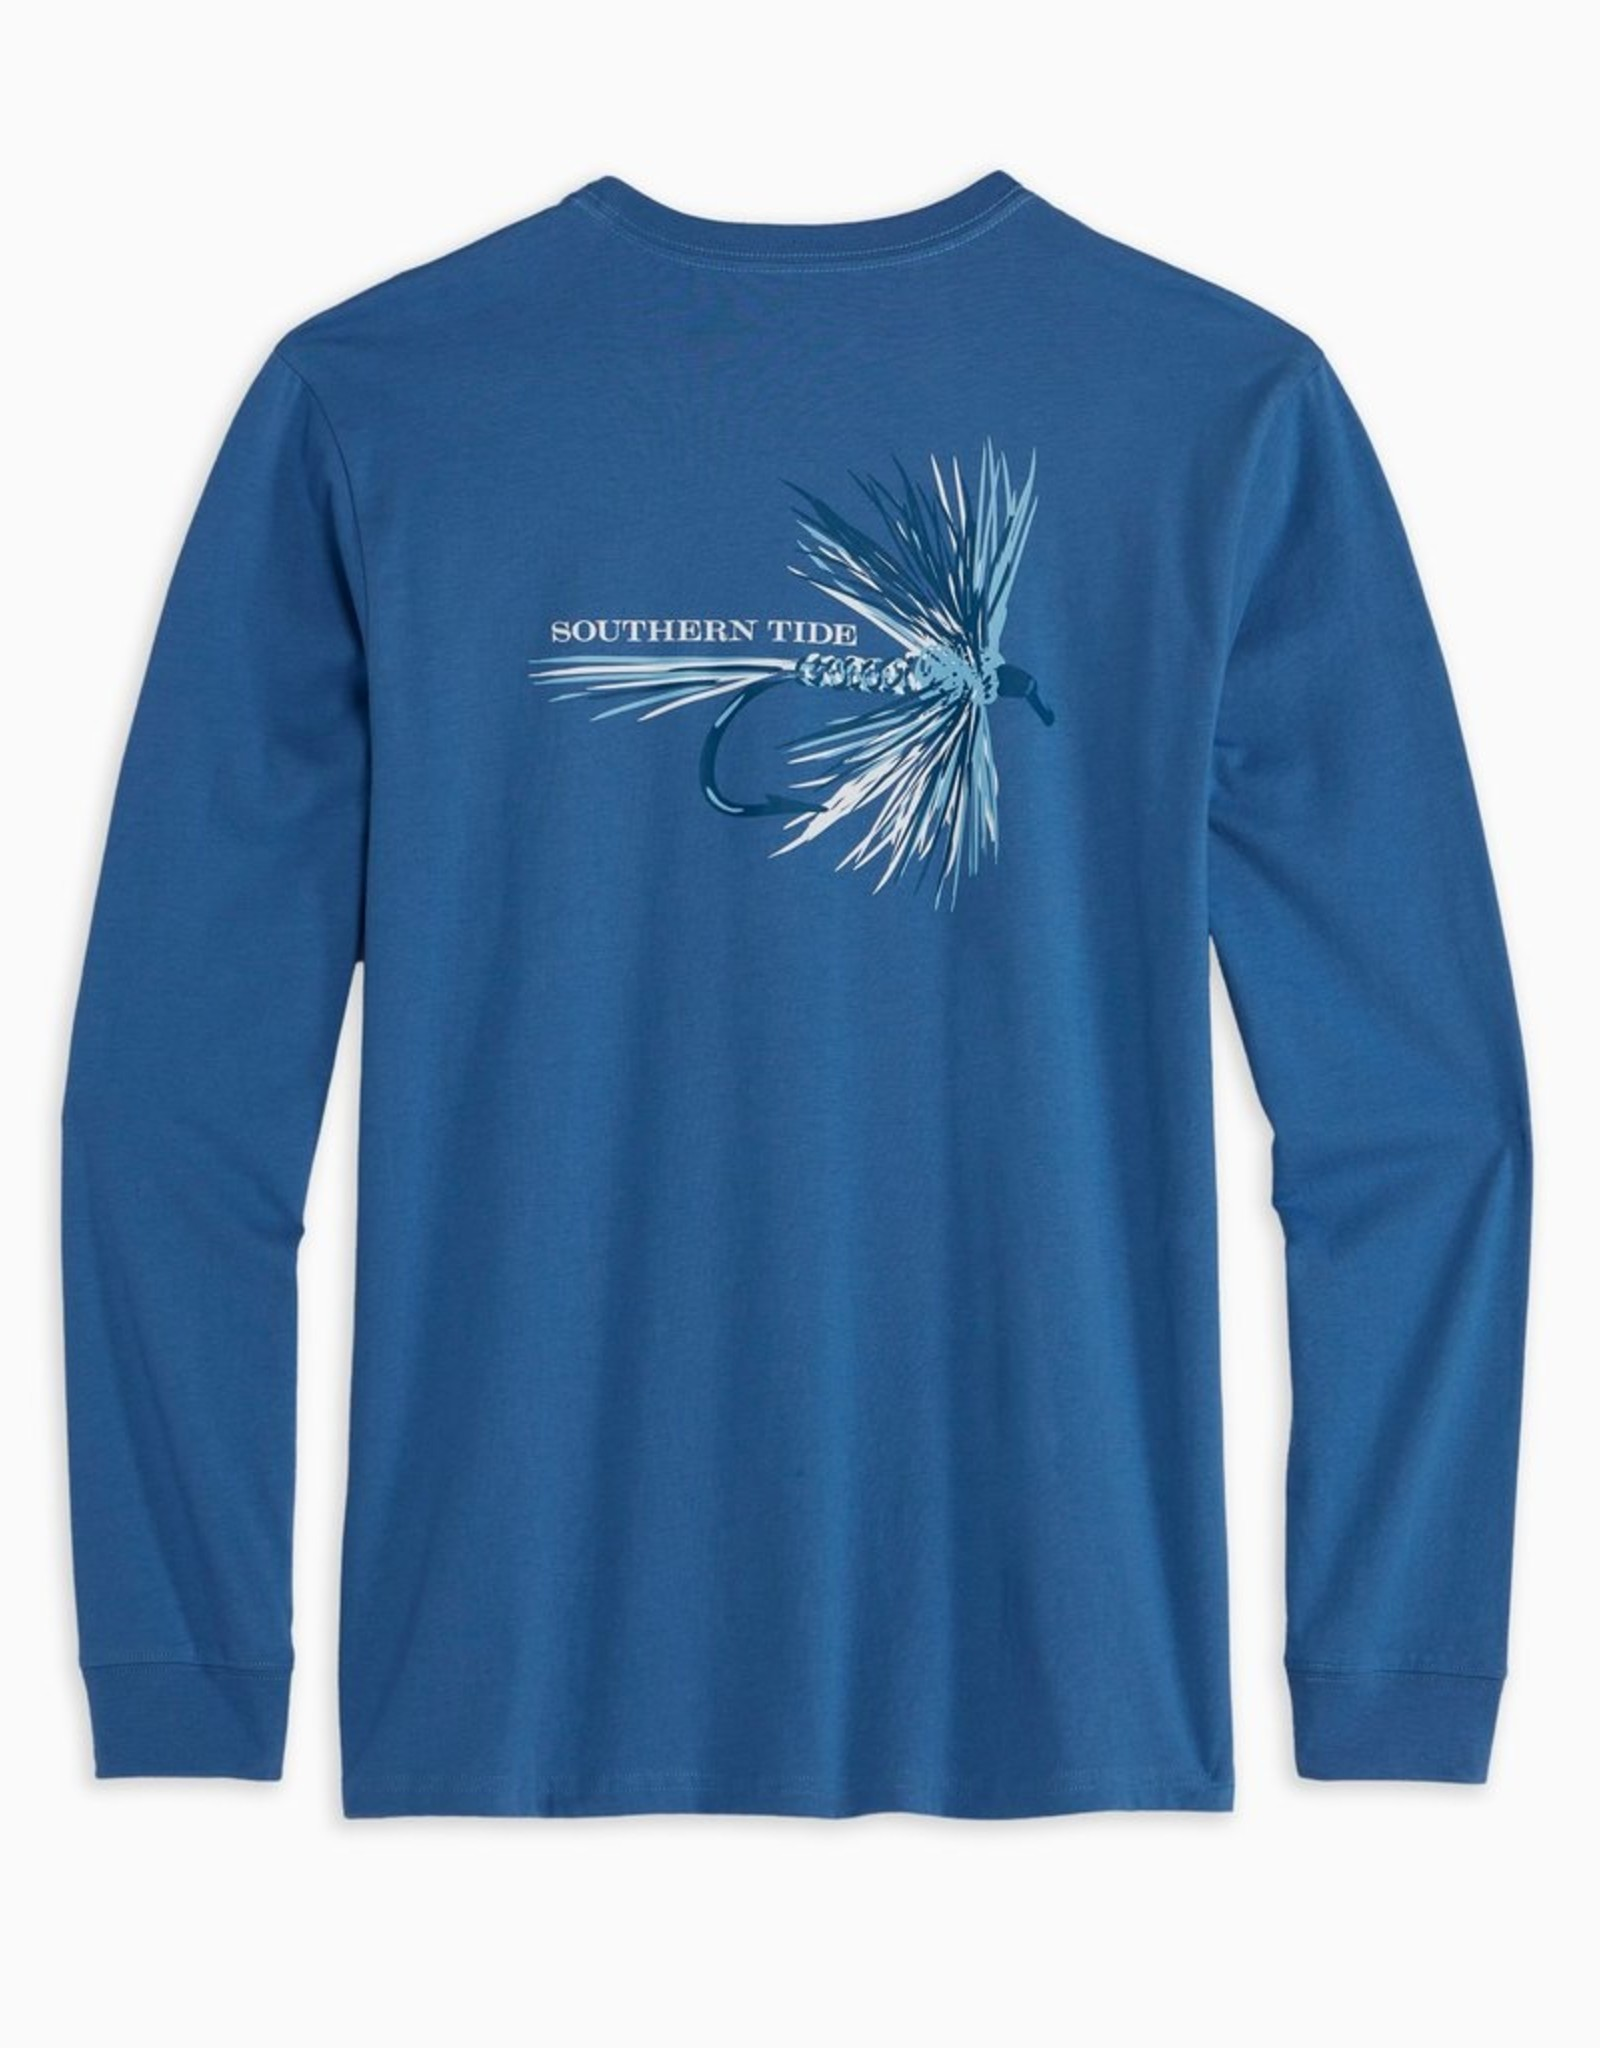 Southern Tide Superfly Tee